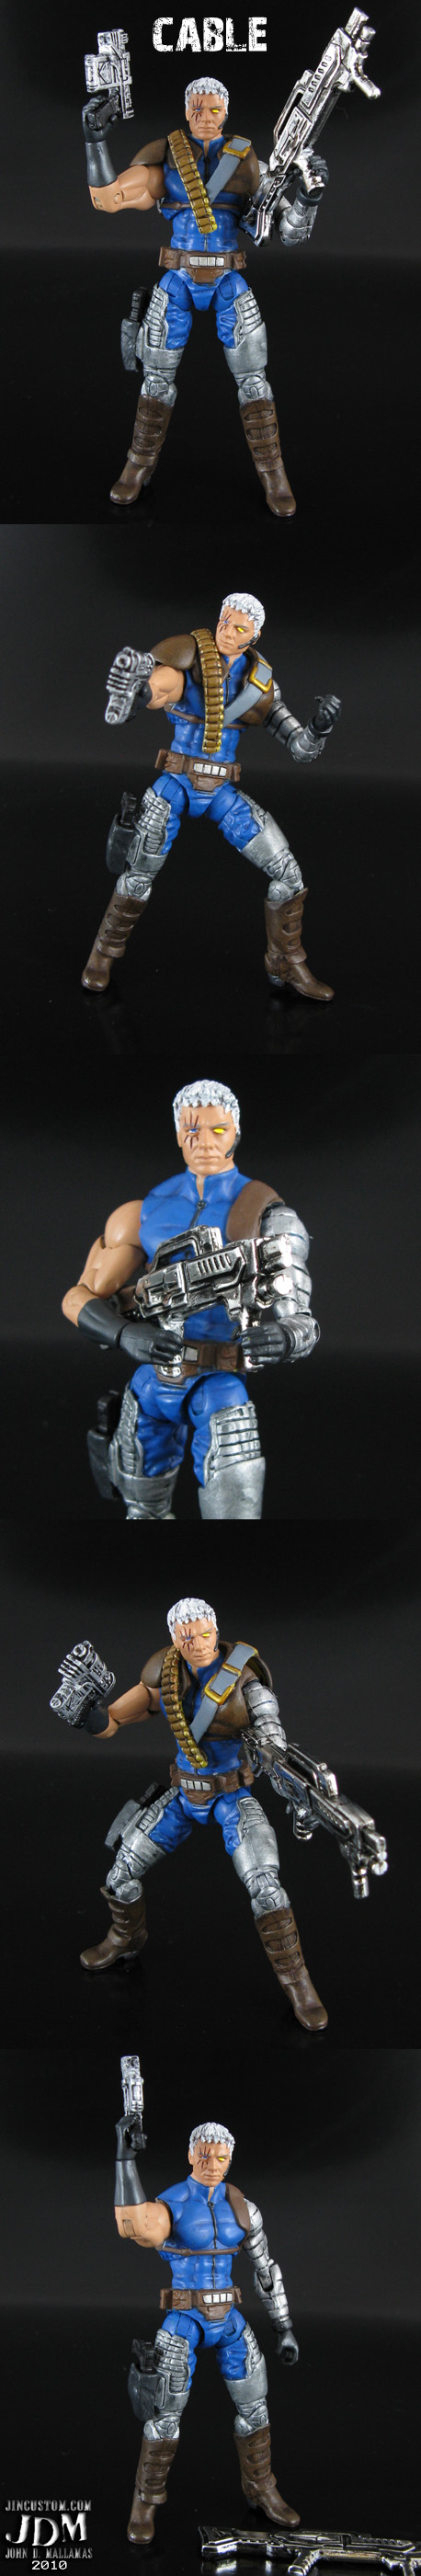 Marvel Universe Cable Custom